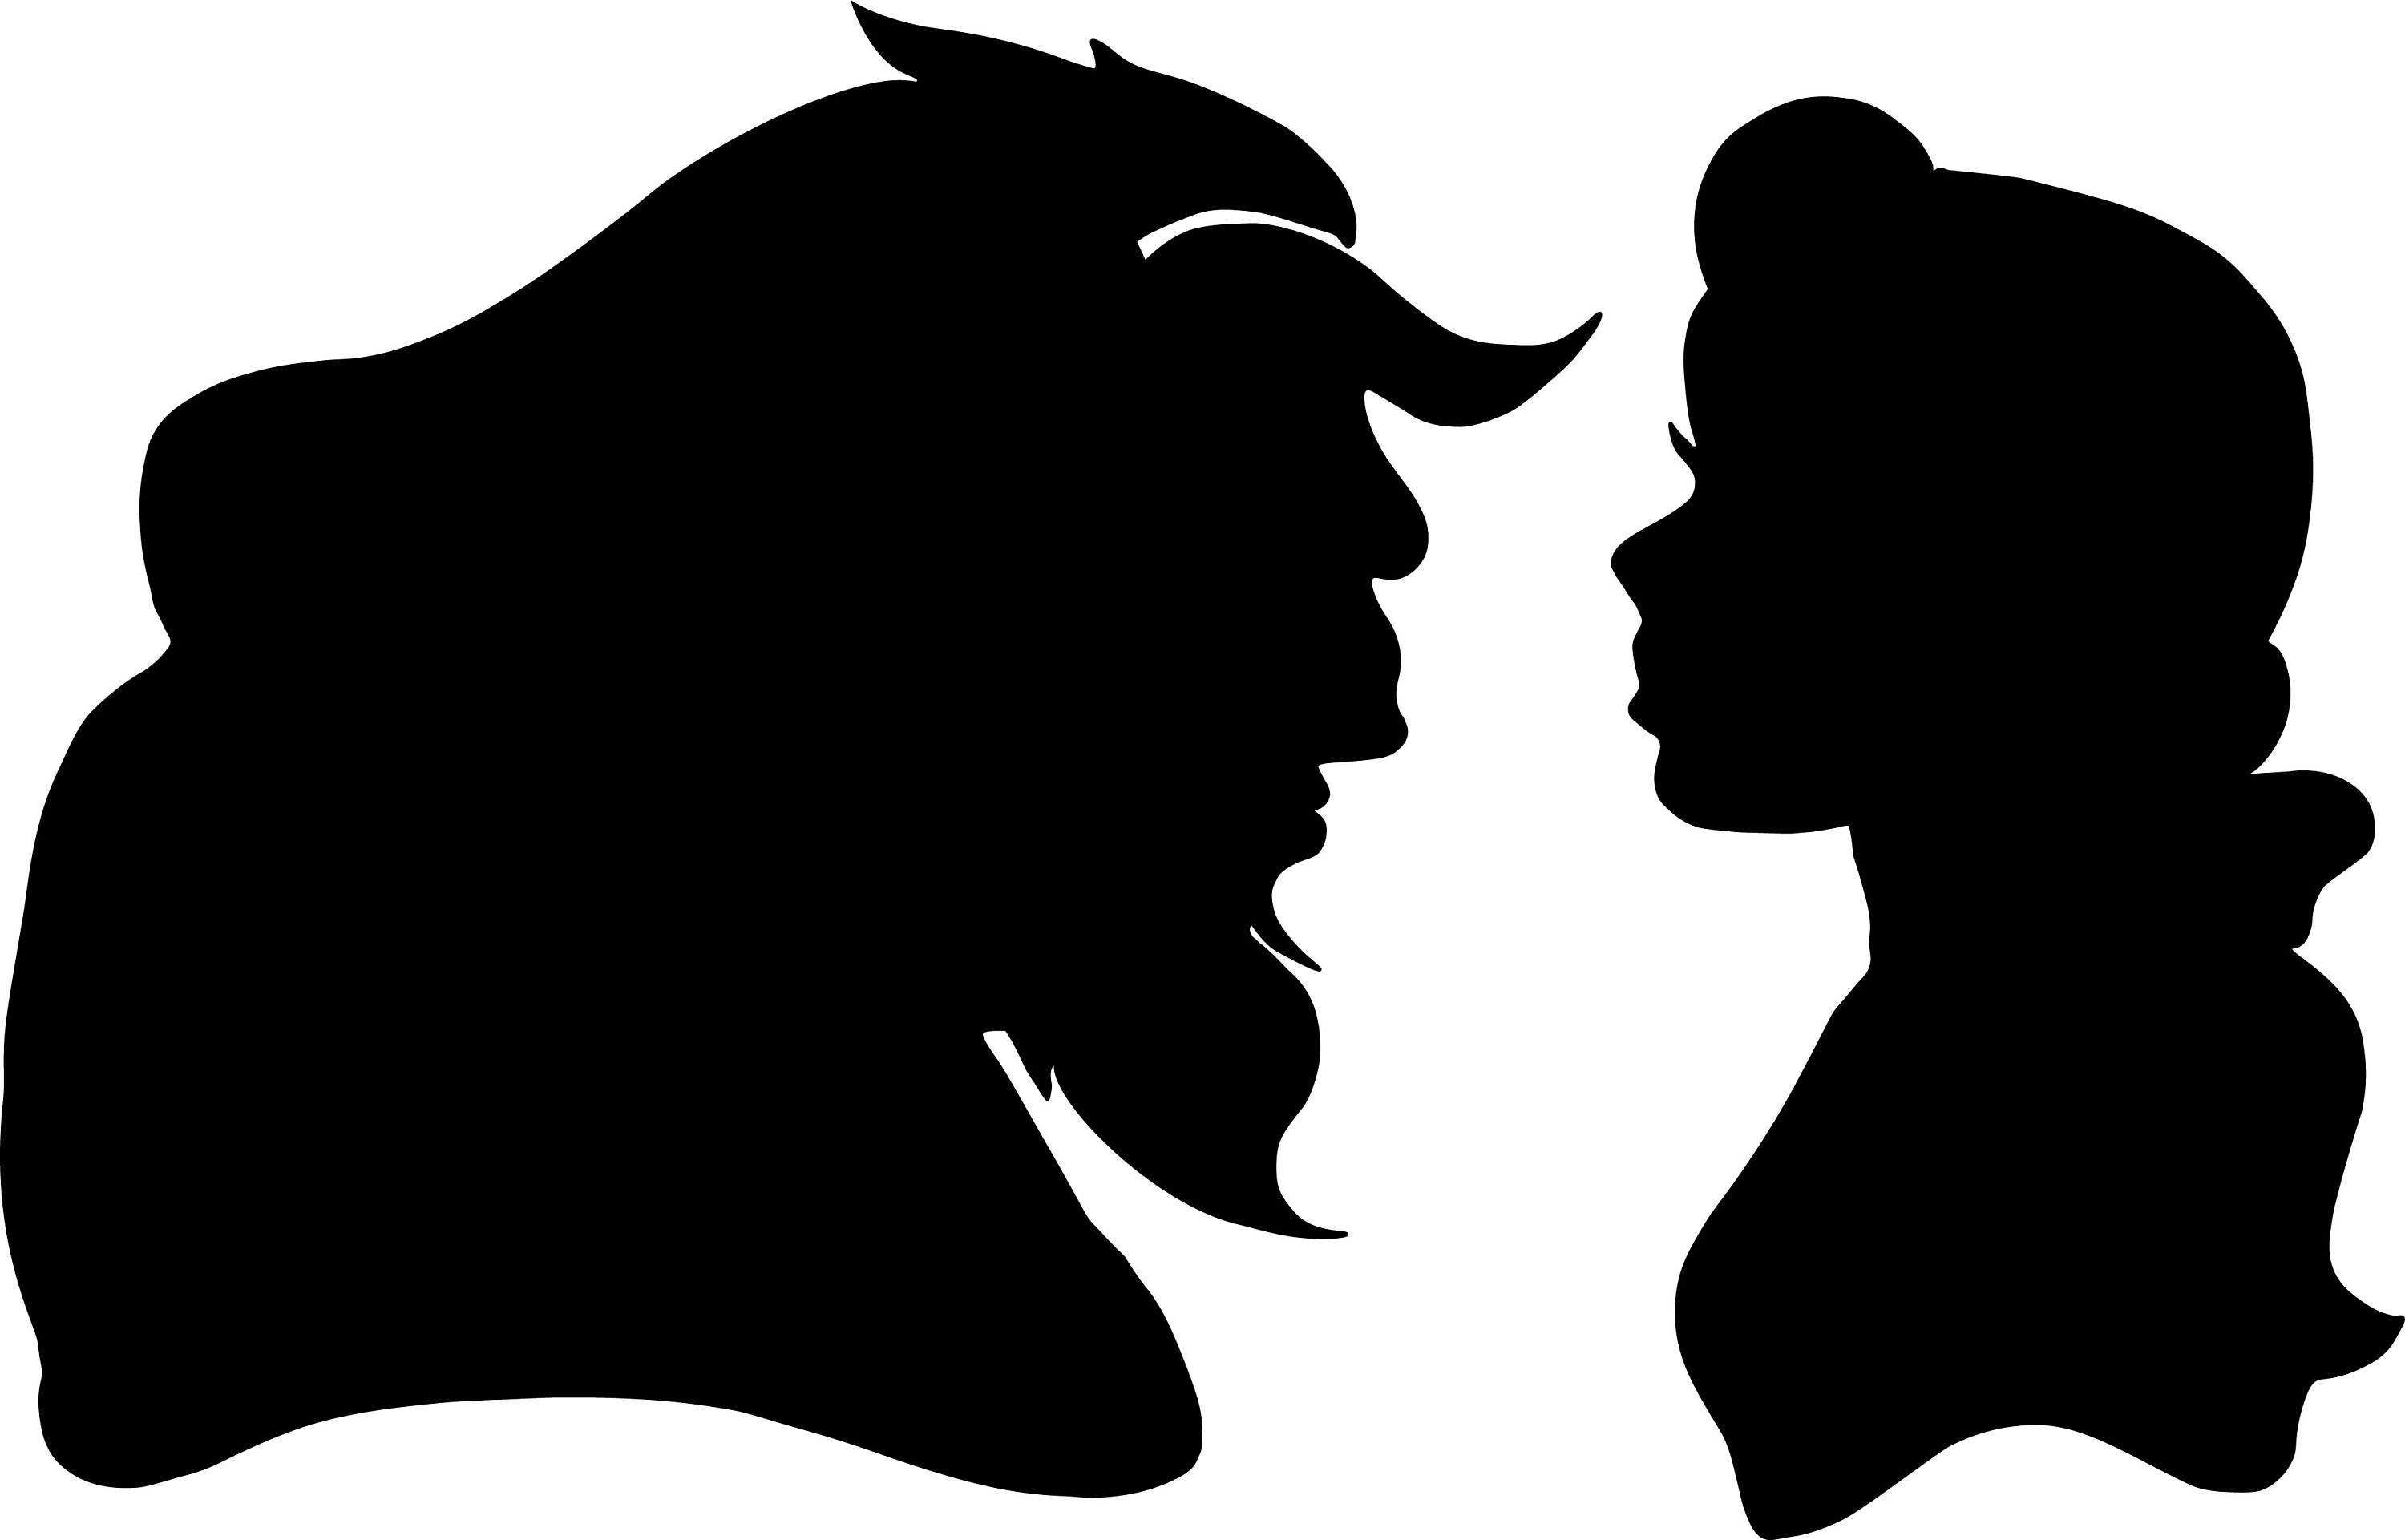 belle silhouette svg #3, Download drawings